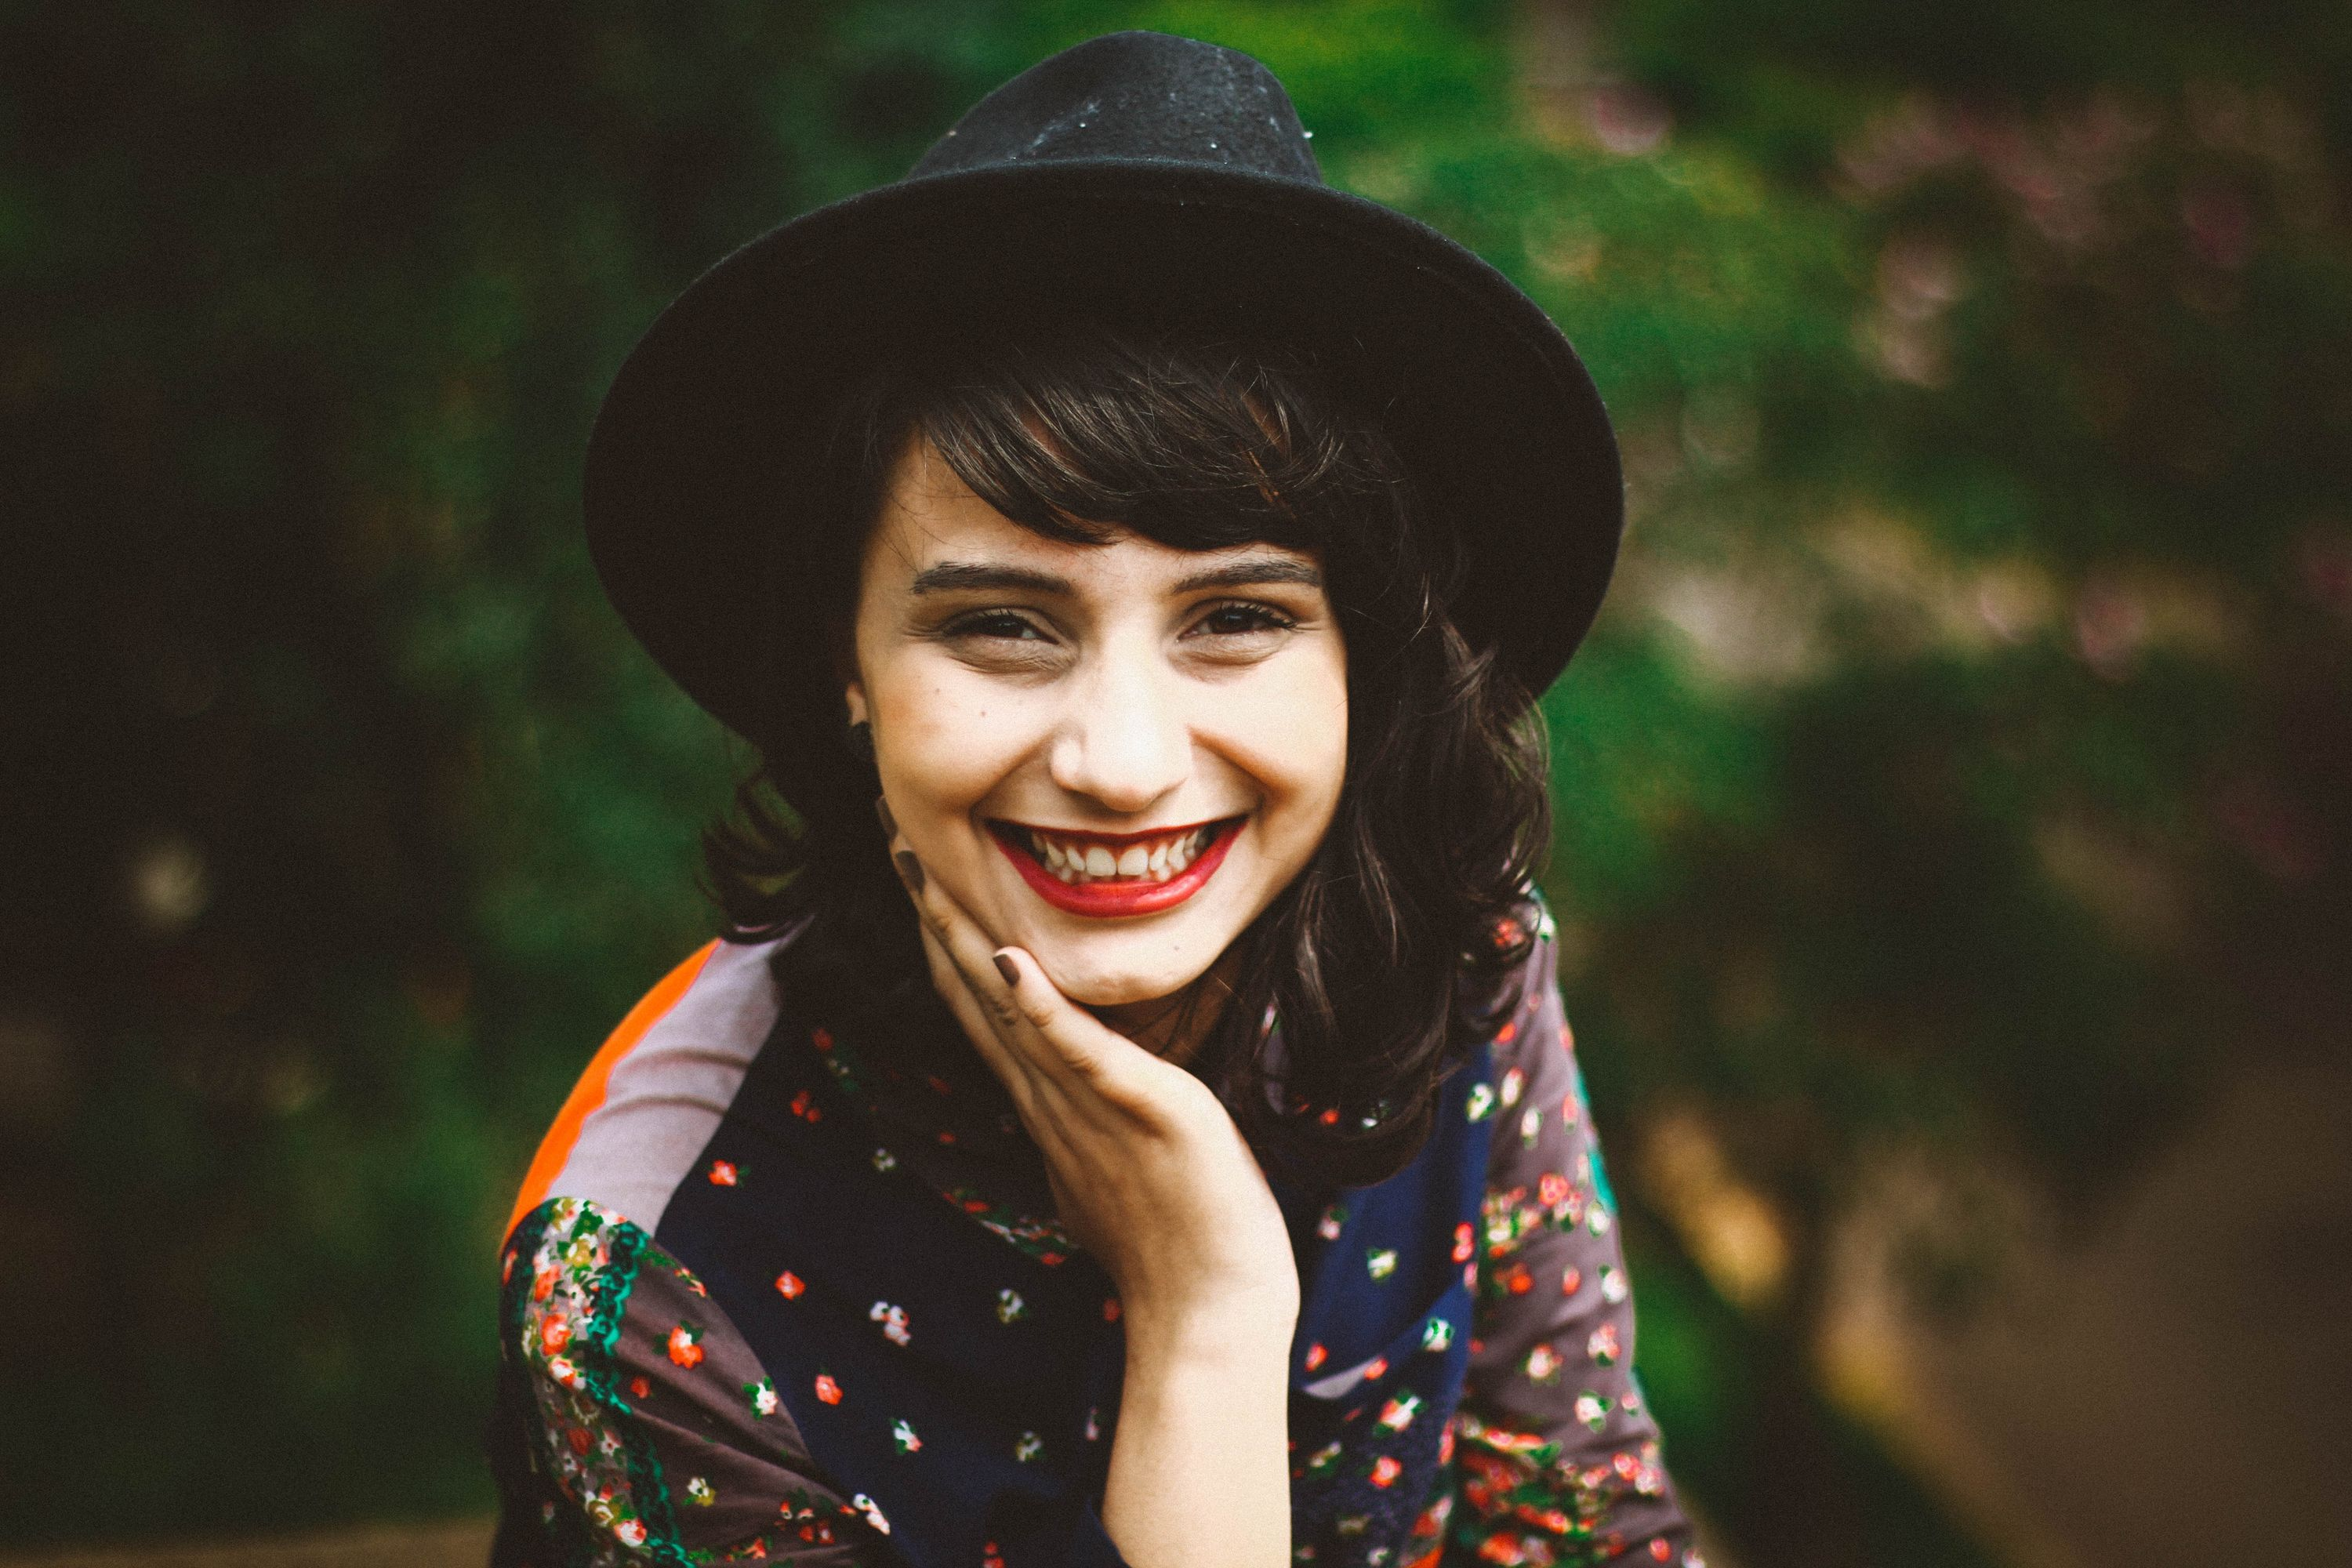 girl with hat and big smile